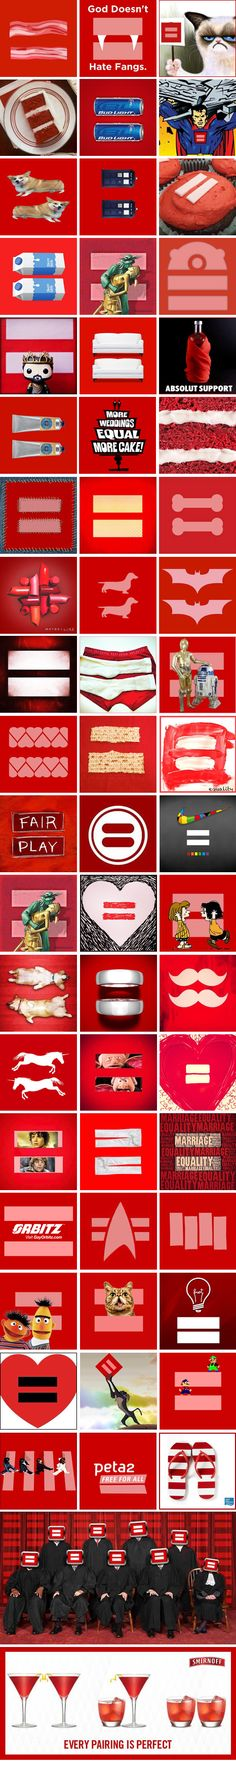 Getting Creative for Marriage Equality